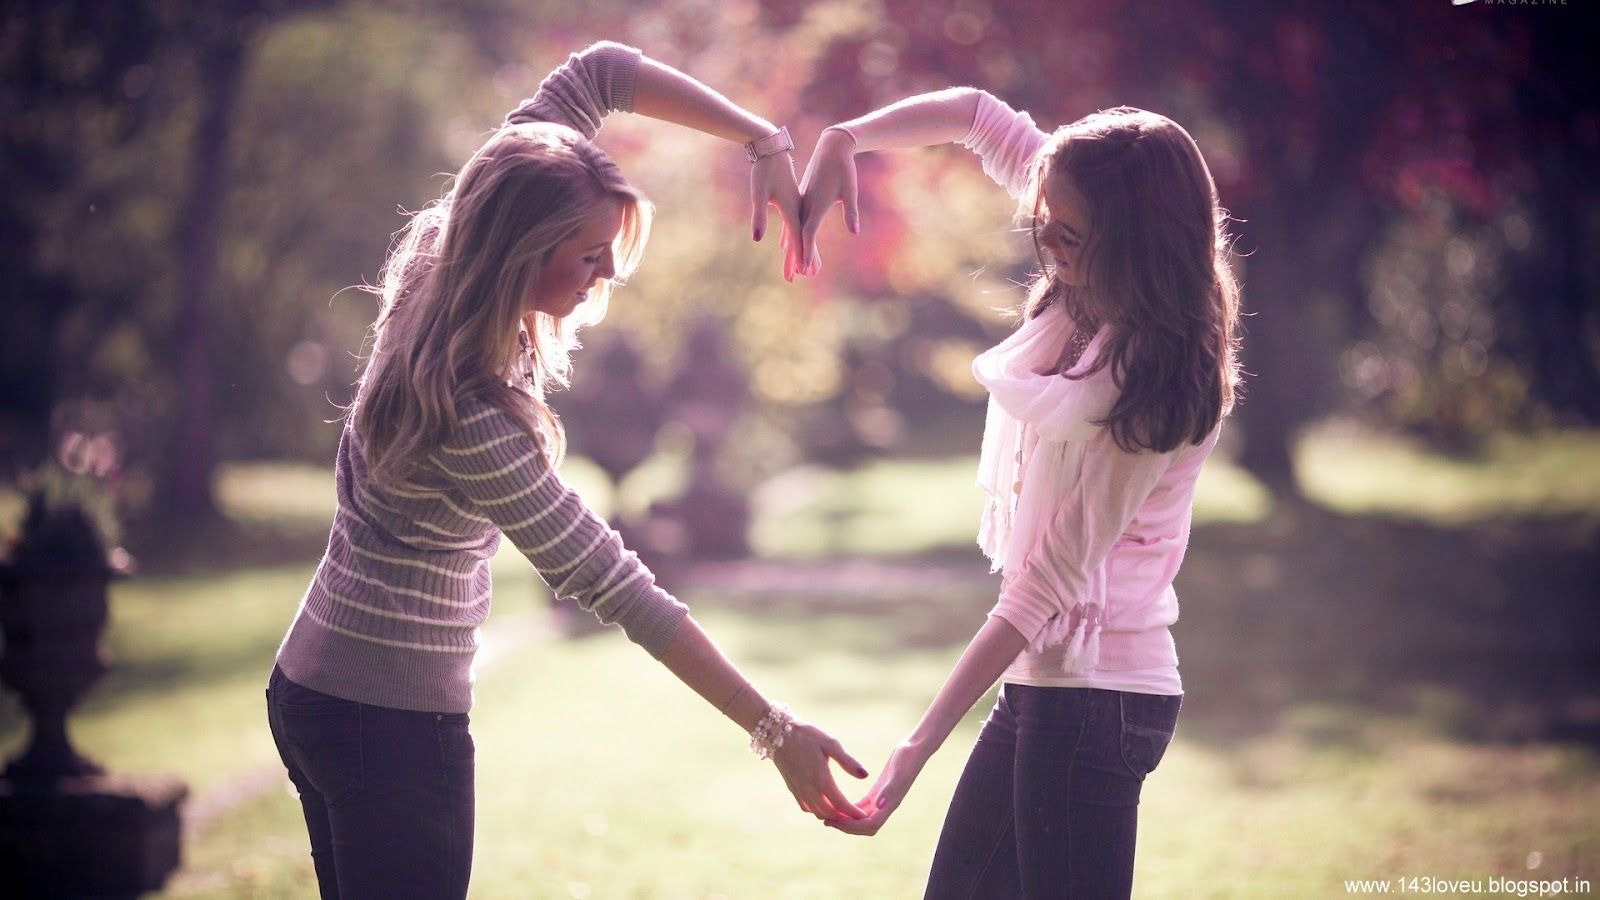 friendship wallpapers chobirdokan | heart photo | pinterest